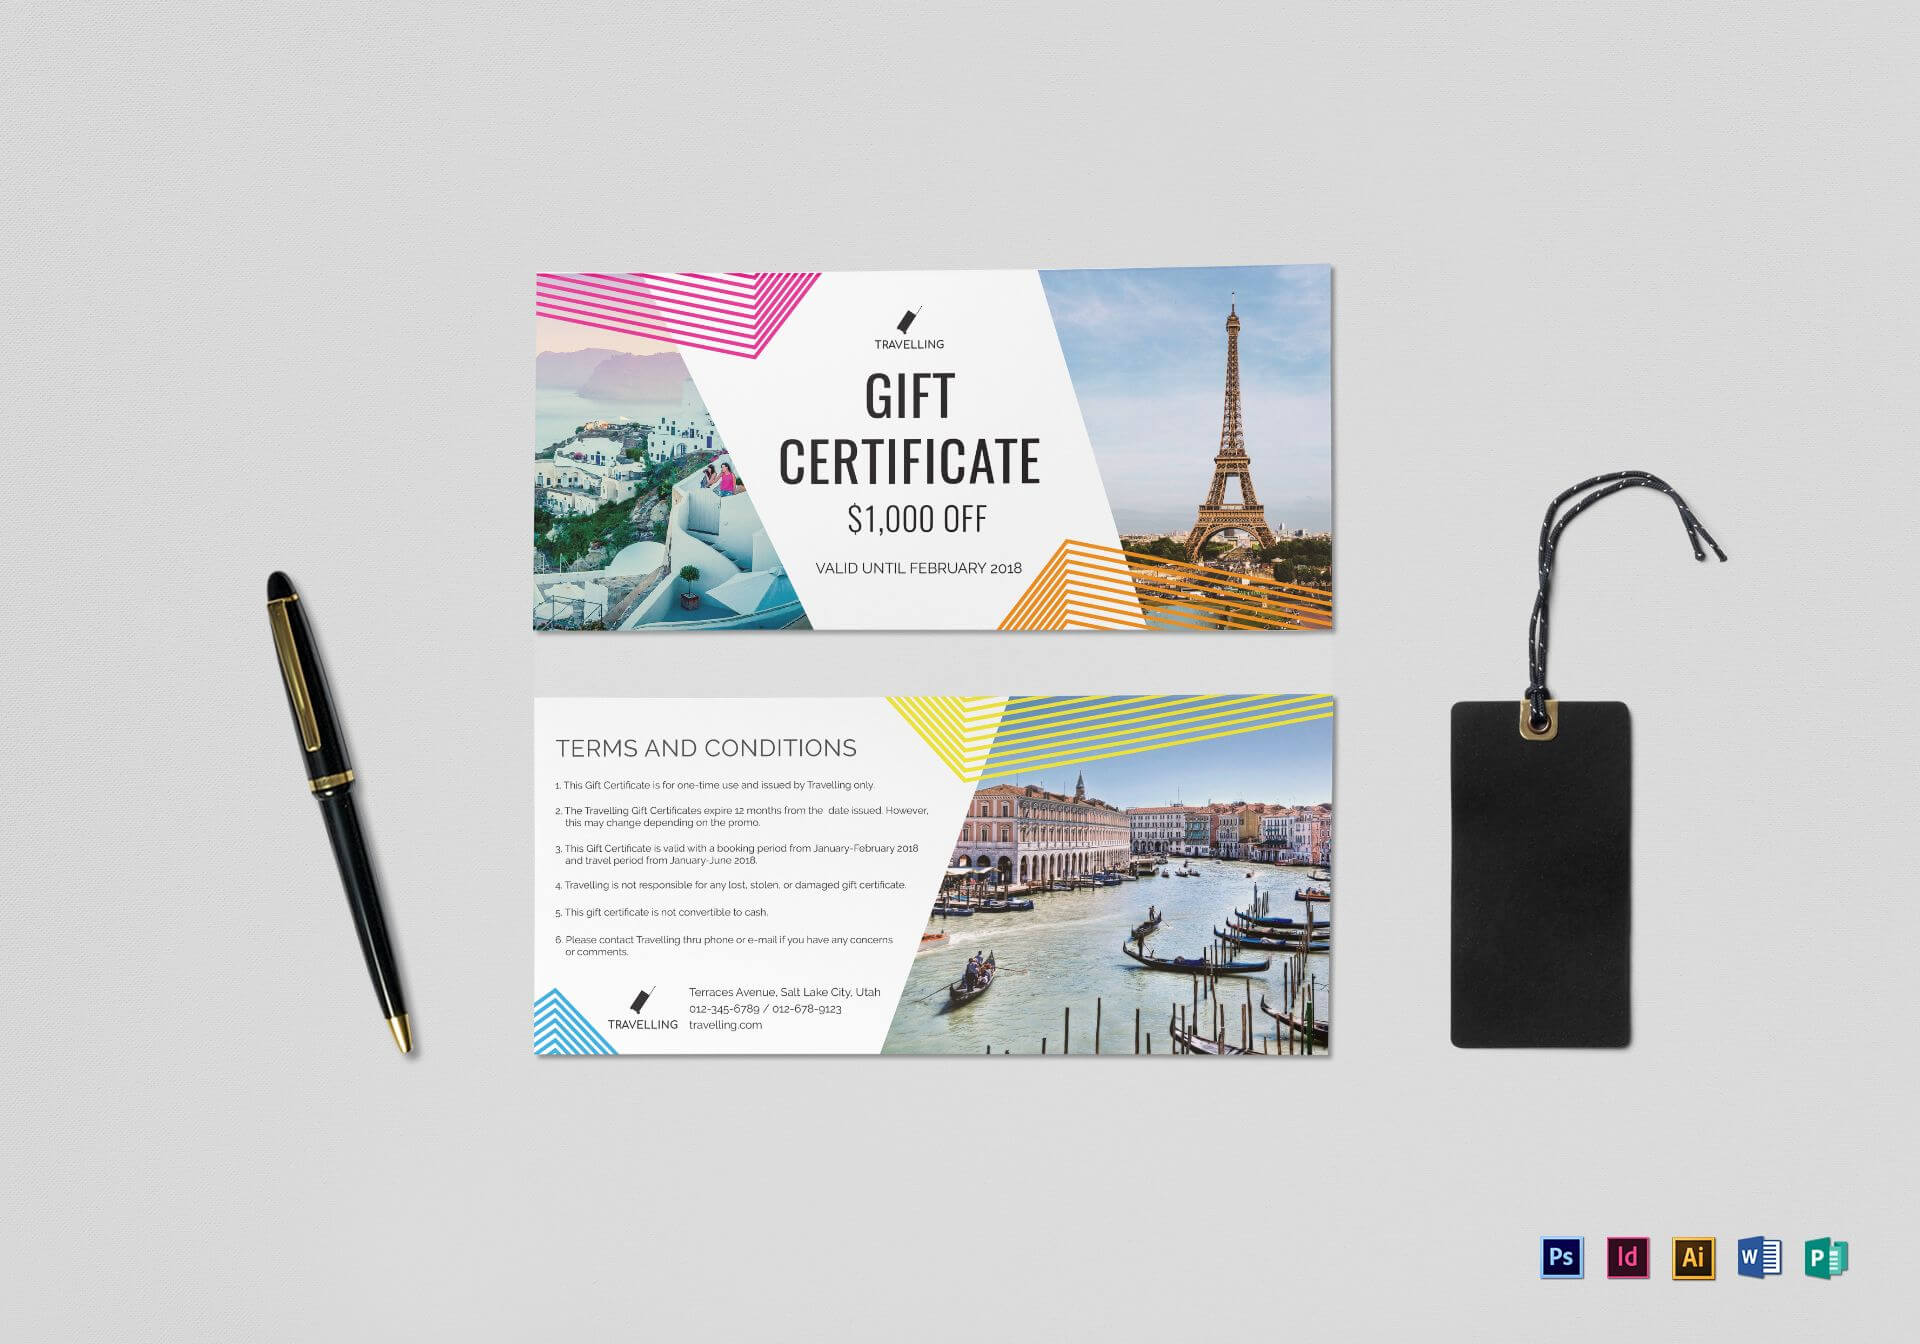 001 Travel Gift Certificate Mock Up Template Stirring Ideas In Free Travel Gift Certificate Template